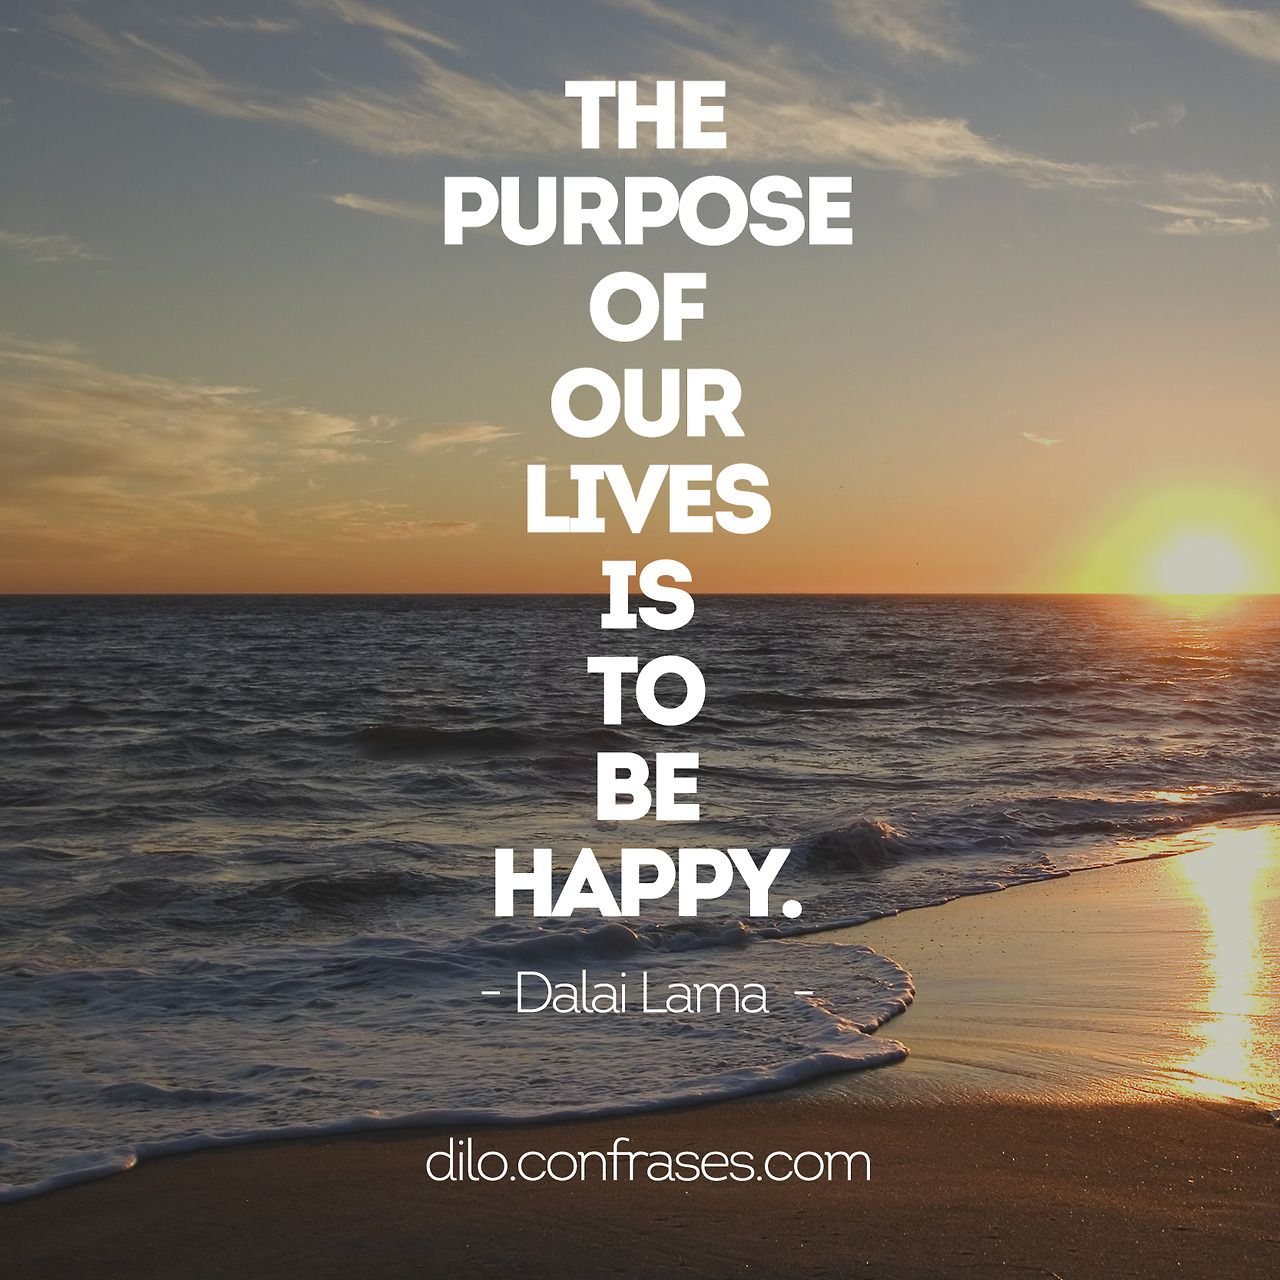 Our Happy Life Quotes: The Purpose Of Our Lives Is To Be Happy